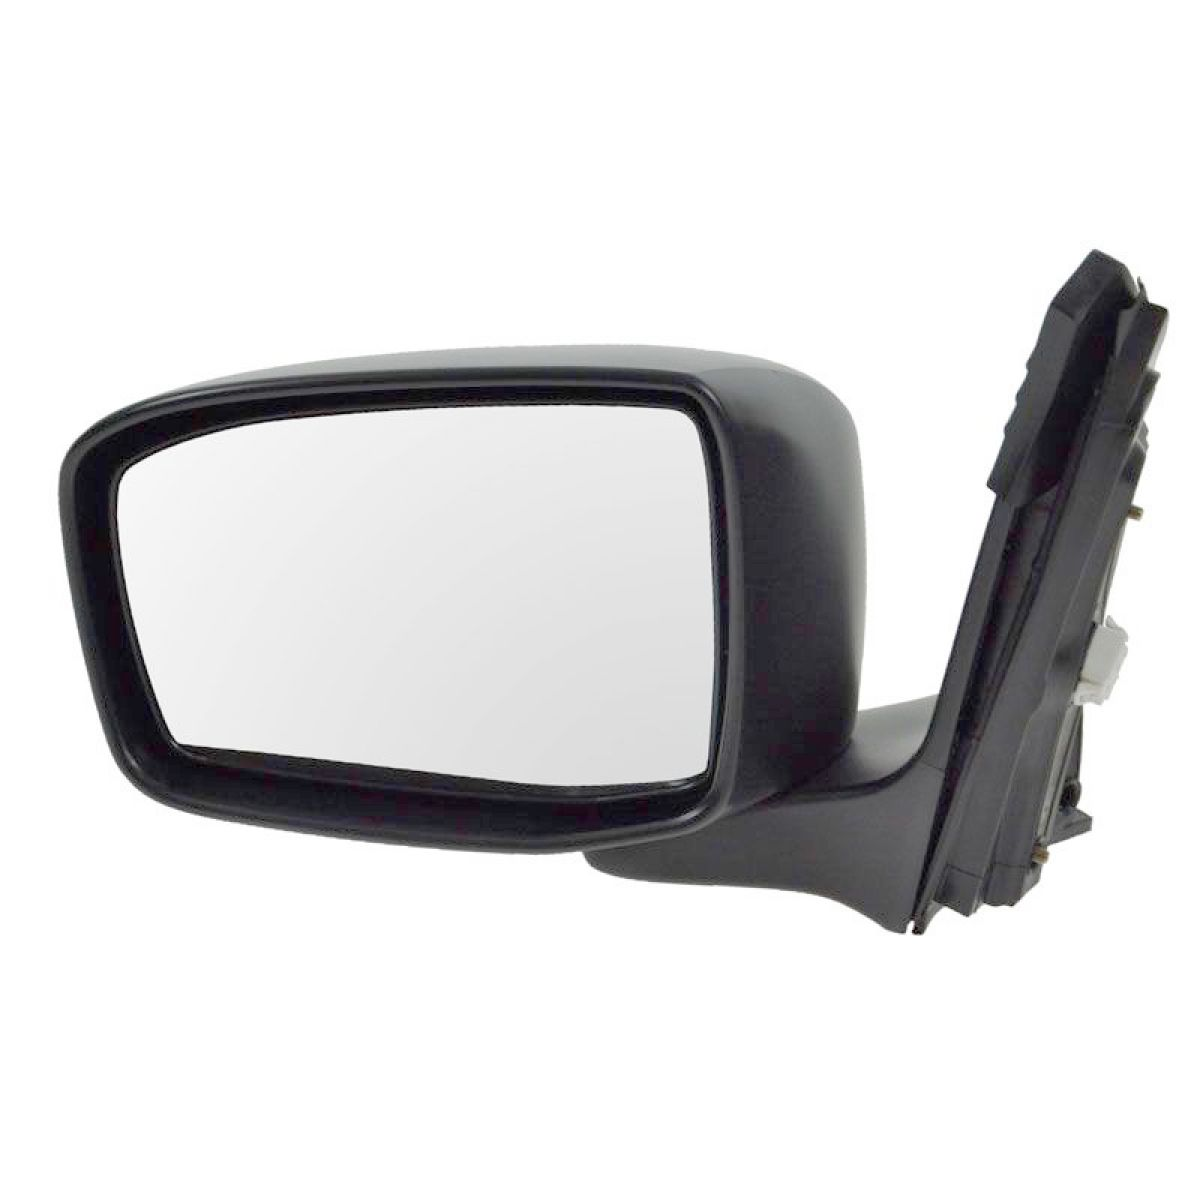 05-10 Odyssey Power Non-Heated Manual Fold Rear View Mirror Right Passenger Side